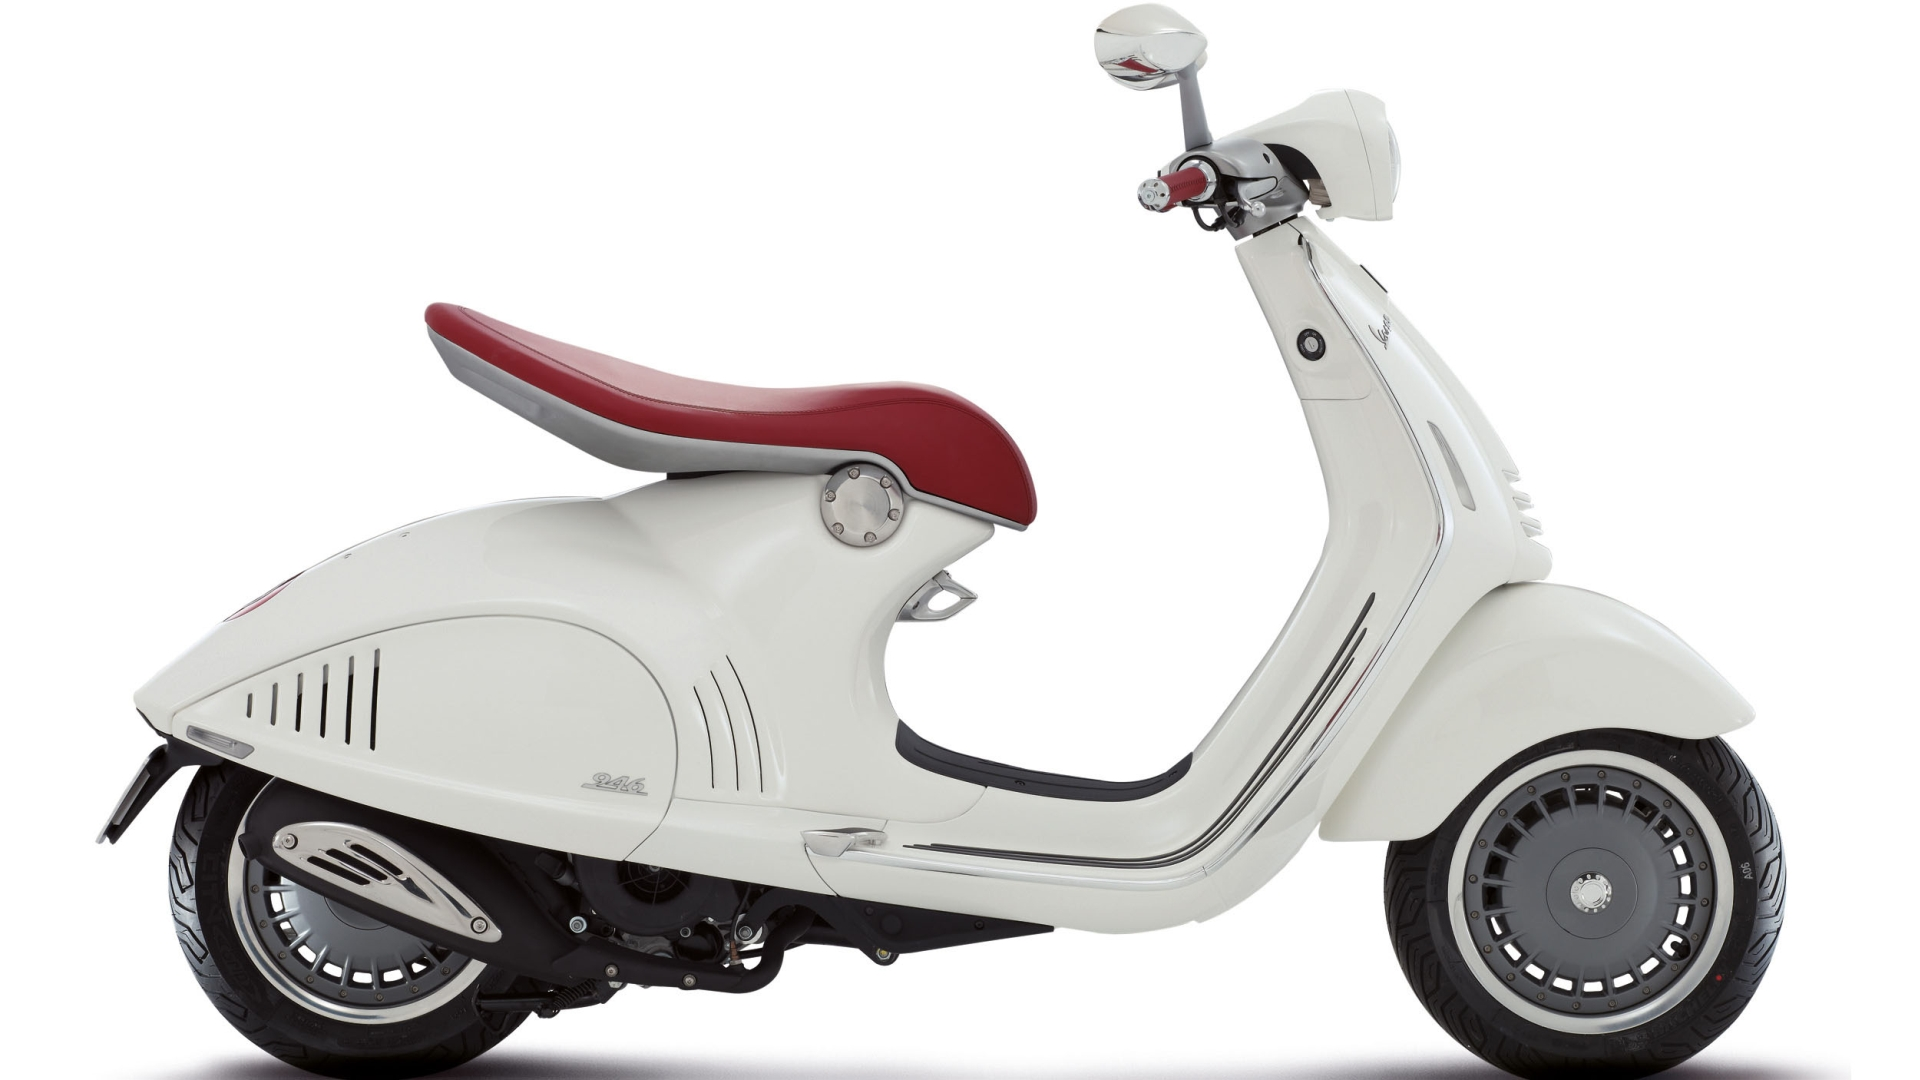 Modifikasi vespa super apps directories - Vespa 3 Vespa 3